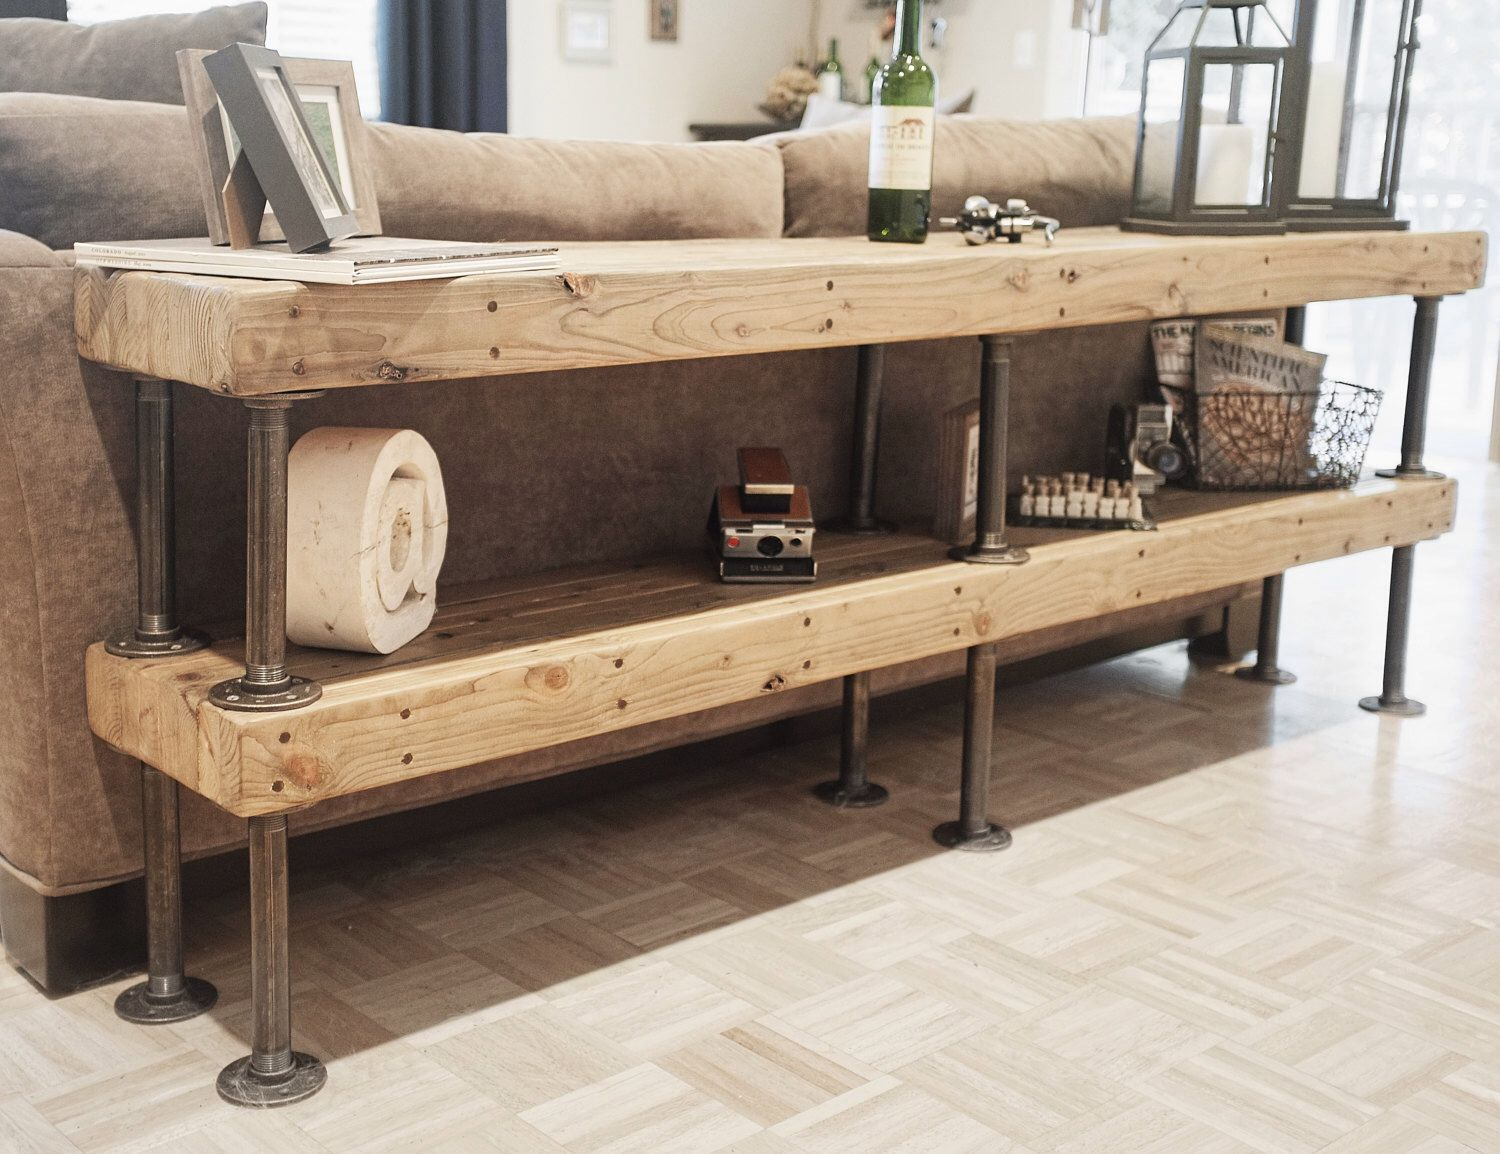 Charmant Portland Furniture   Galvanized Pipe And Salvaged Butcher Block   Modern  Sofa Table By BitandBolt On Etsy ...